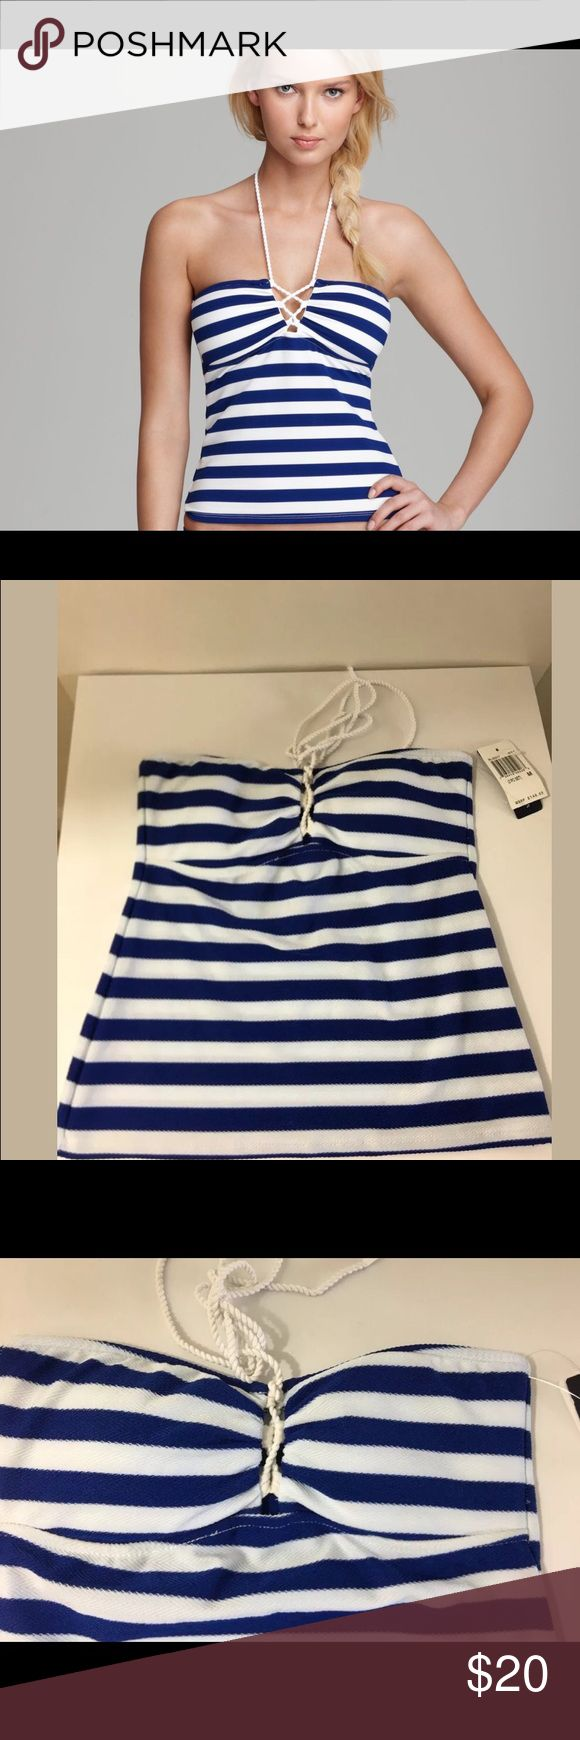 Ralph Lauren Blue Label Tankini Medium RALPH LAUREN BLUE LABEL CAPRI STRIPE LACED TANKINI BATHING SUIT TOP  SIZE MEDIUM  BLUE AND WHITE STRIPED..  TOP IS BANDEAU HALTER TIE AROUND NECK TANK STYLE WITH BLUE AND WHITE STRIPES..ALSO HAS REMOVABLE INNER PADS..   VERY VERY CUTE!!!!  BRAND NEW WITH TAGS.. Ralph Lauren Blue Label Swim Bikinis